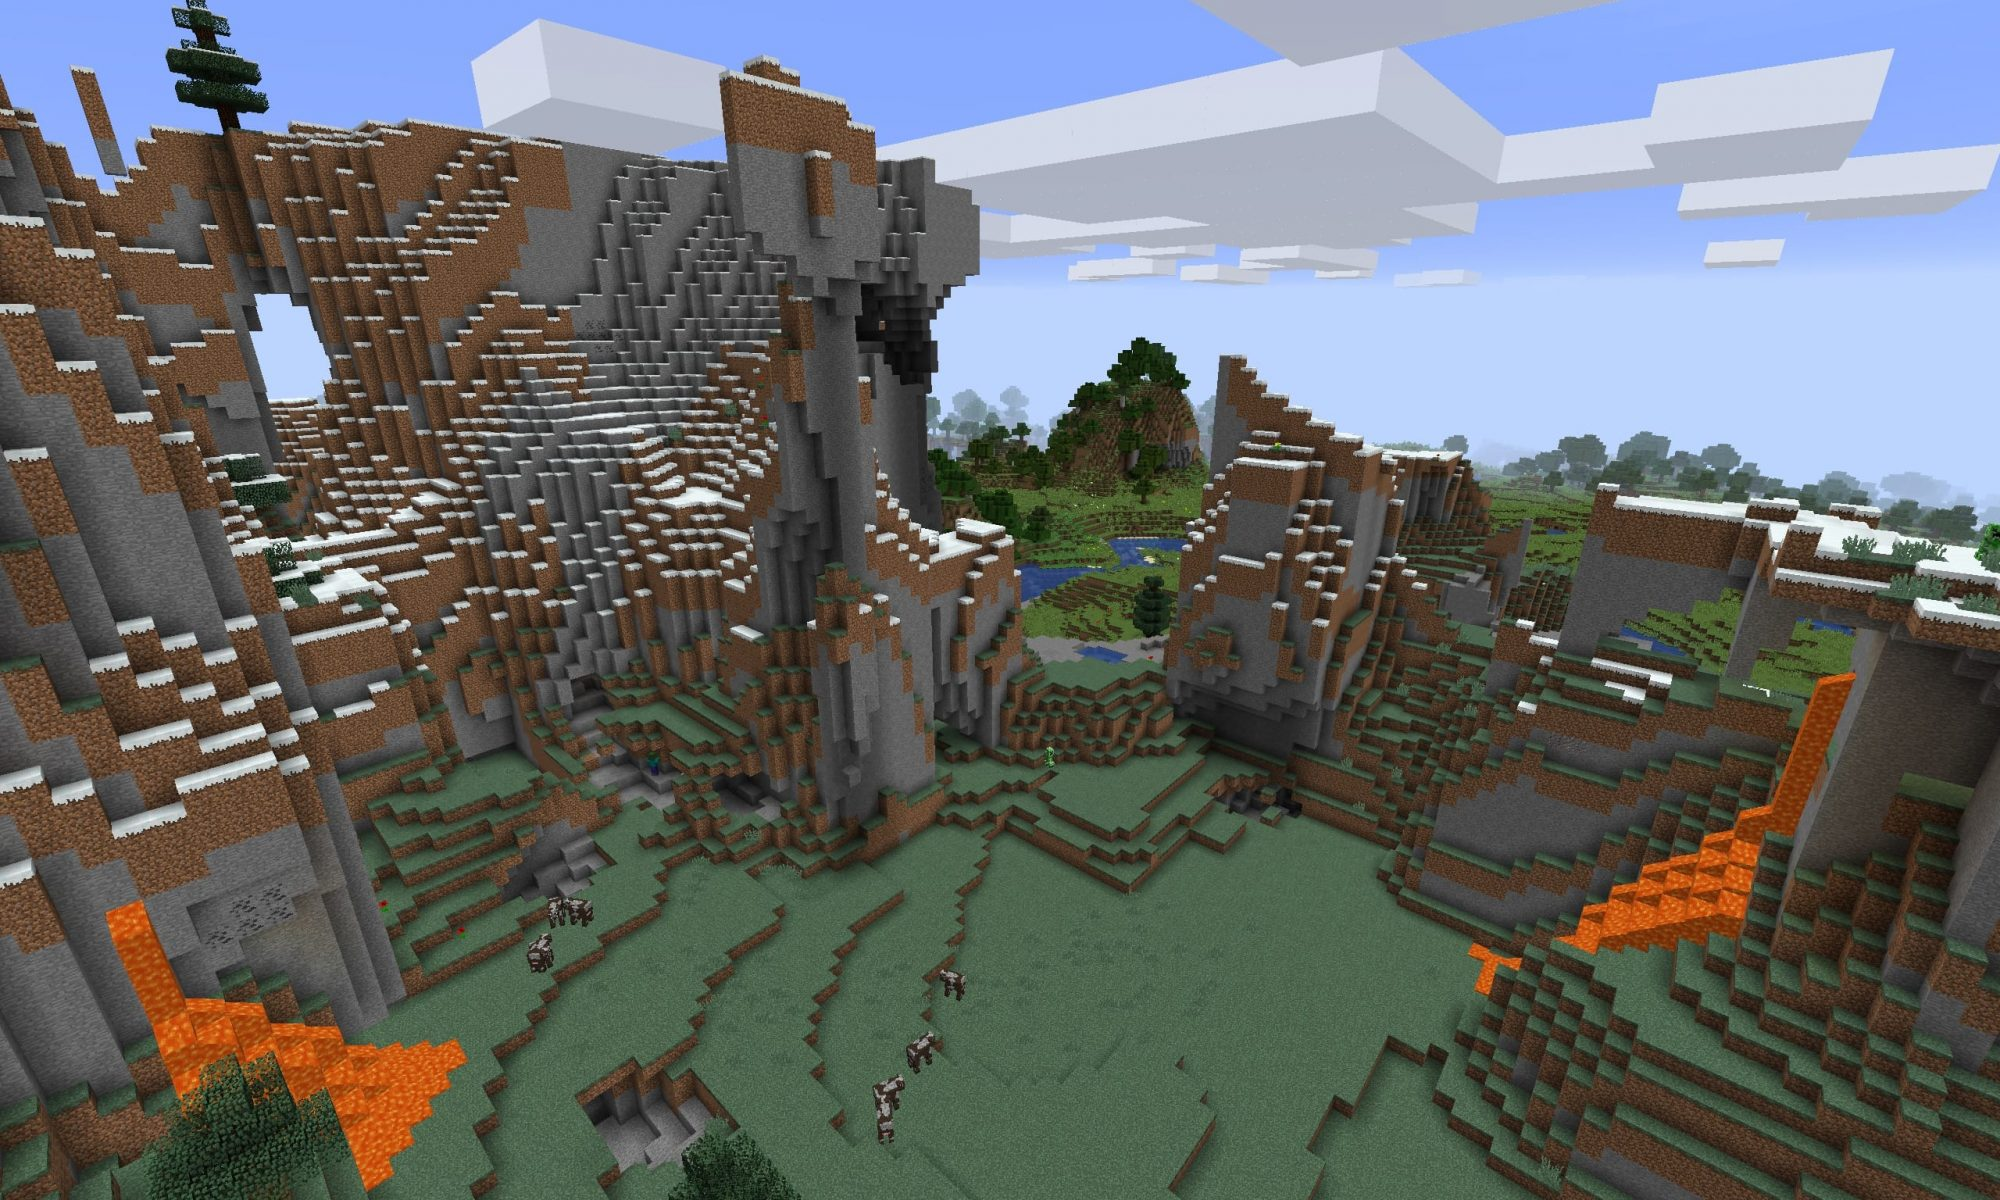 Minecraft Mountainextreme Hill Seeds Minecraft Seed Hq